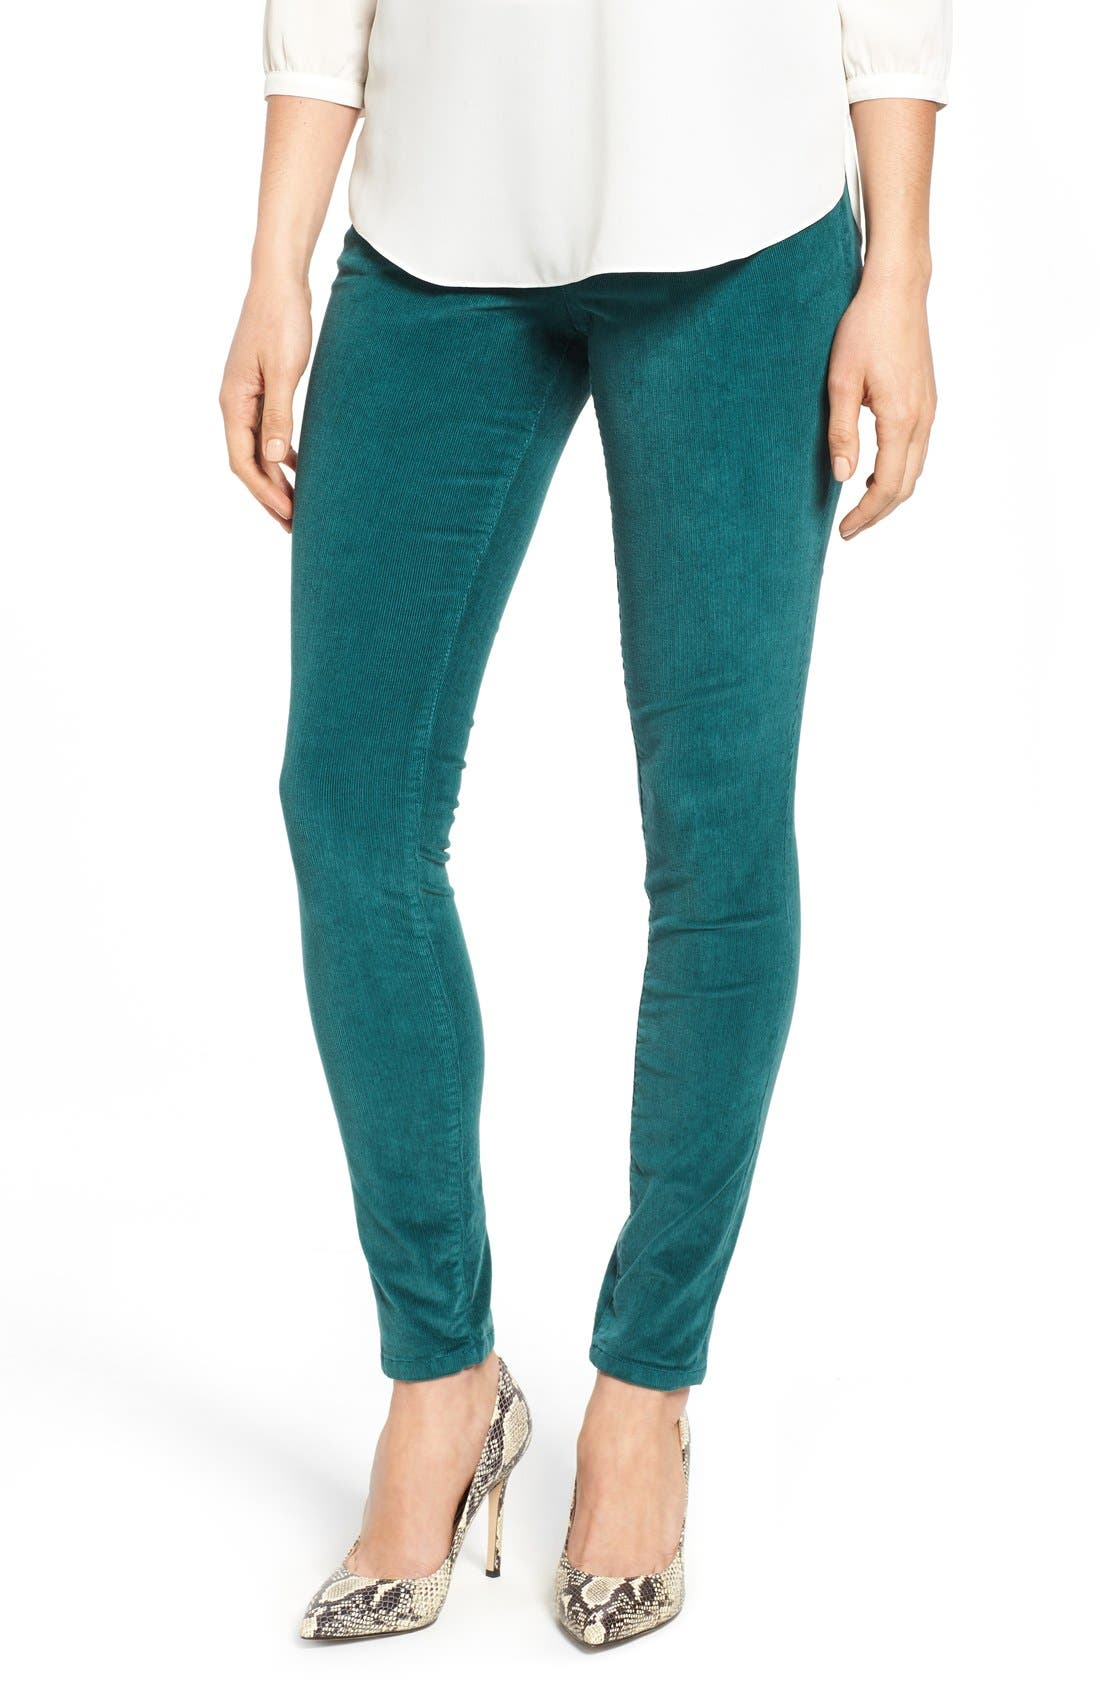 Alternate Image 1 Selected - Jag Jeans Nora Pull-On Stretch Skinny Corduroy Pants (Regular & Petite)